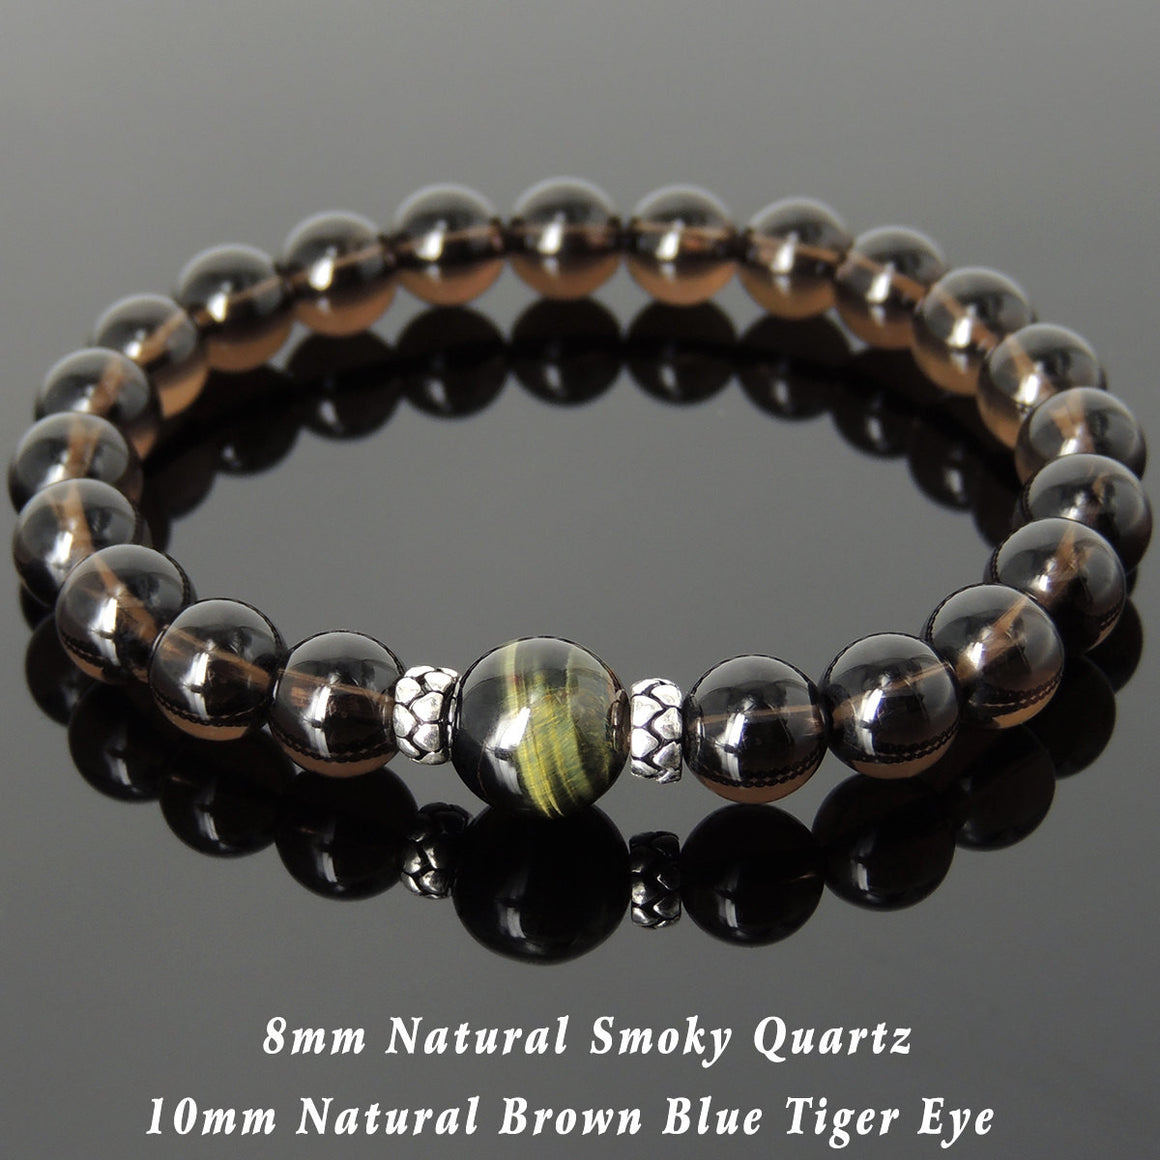 Smoky Quartz & Brown Blue Tiger Eye Healing Gemstone Bracelet with S925 Sterling Silver Artisan Spacer Beads - Handmade by Gem & Silver BR1046